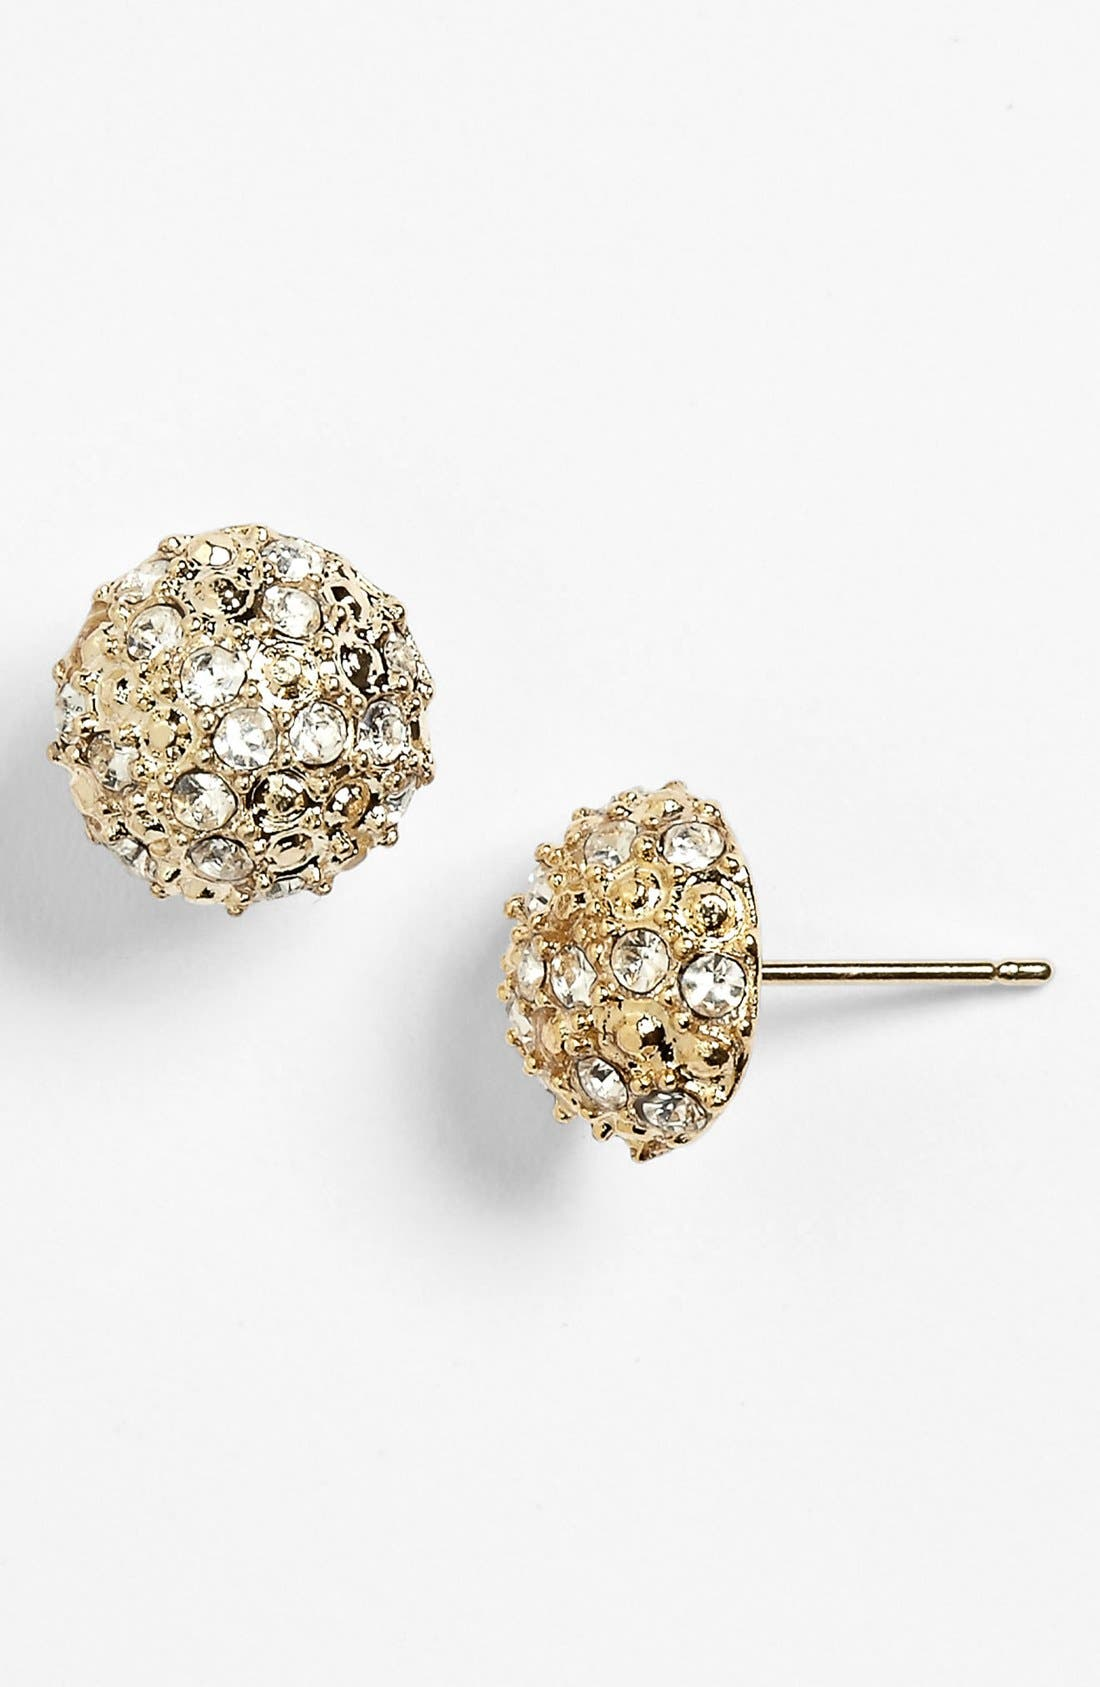 Alternate Image 1 Selected - Rachel Rhinestone Dome Stud Earrings